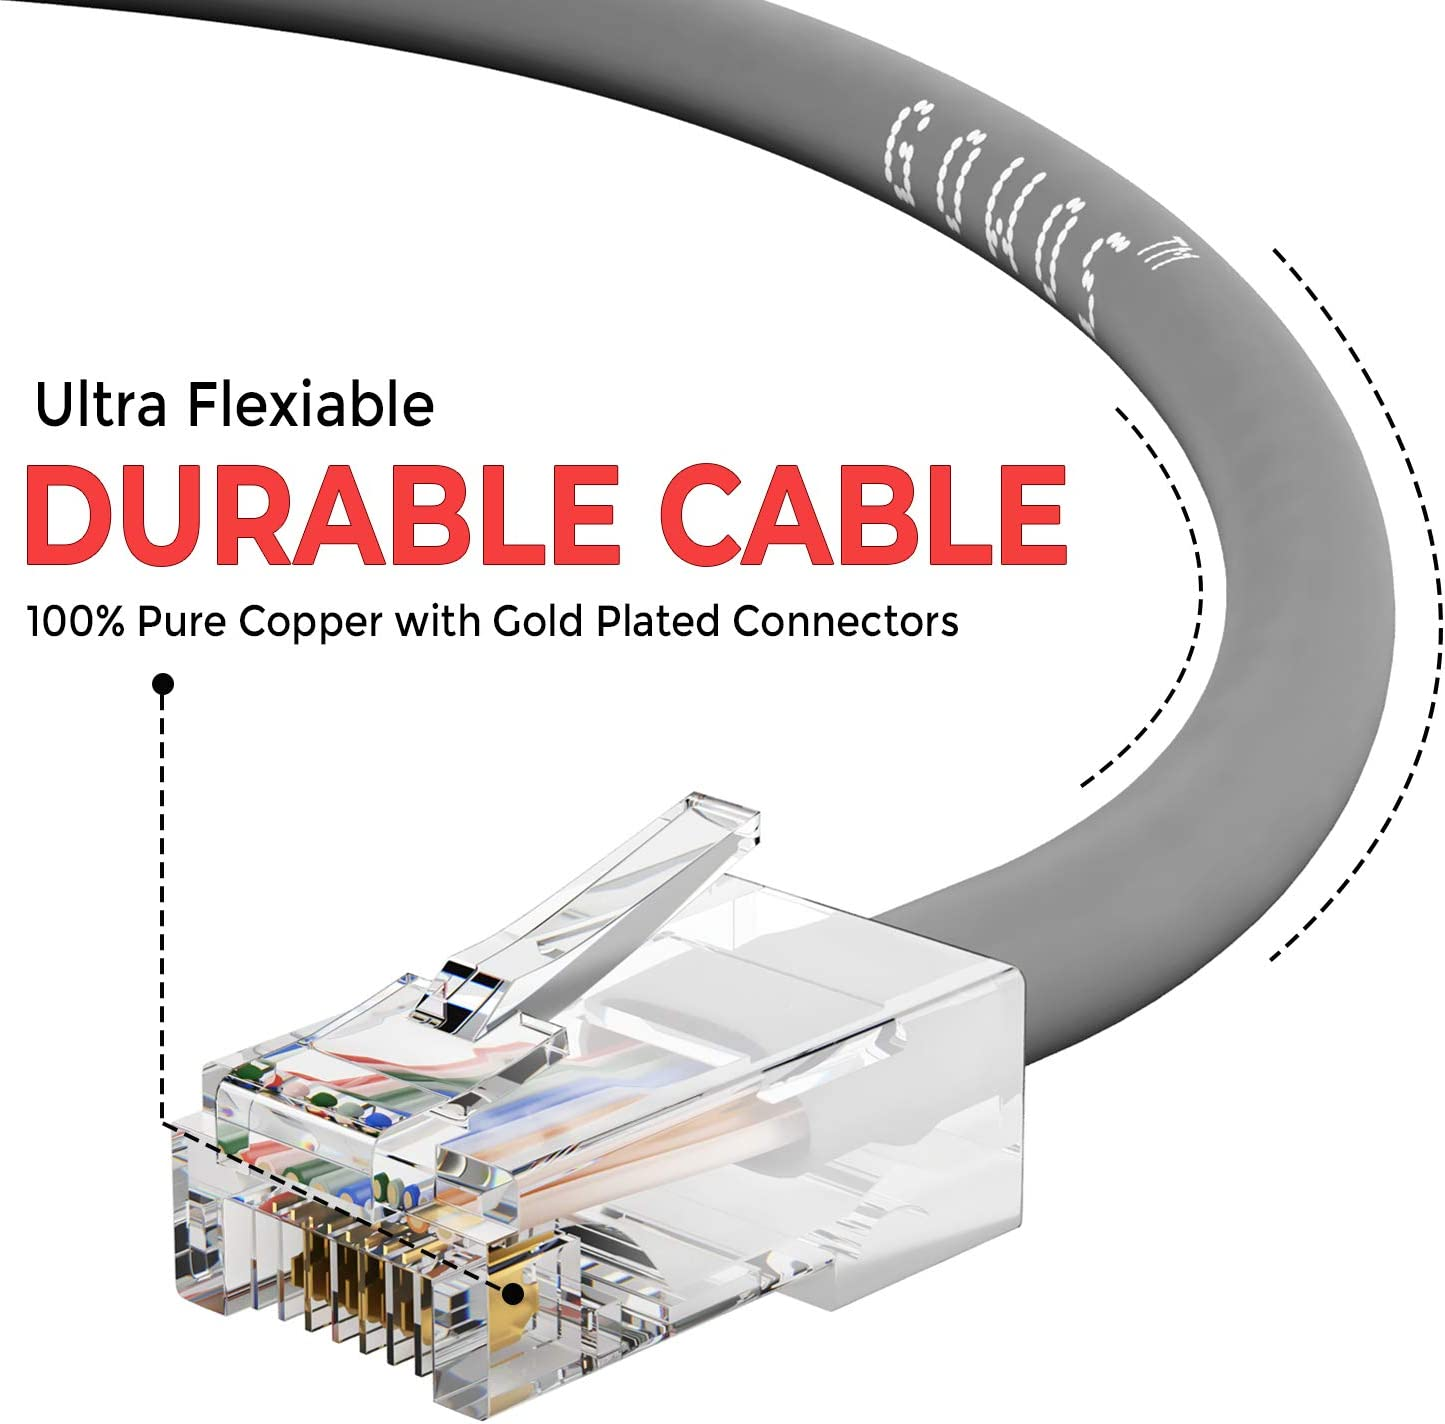 10-Pack - 8 Feet 1Gigabit//Sec High Speed LAN Internet//Patch Cable 350MHz GOWOS Cat5e Ethernet Cable Gray 24AWG Network Cable with Gold Plated RJ45 Non-Booted Connector